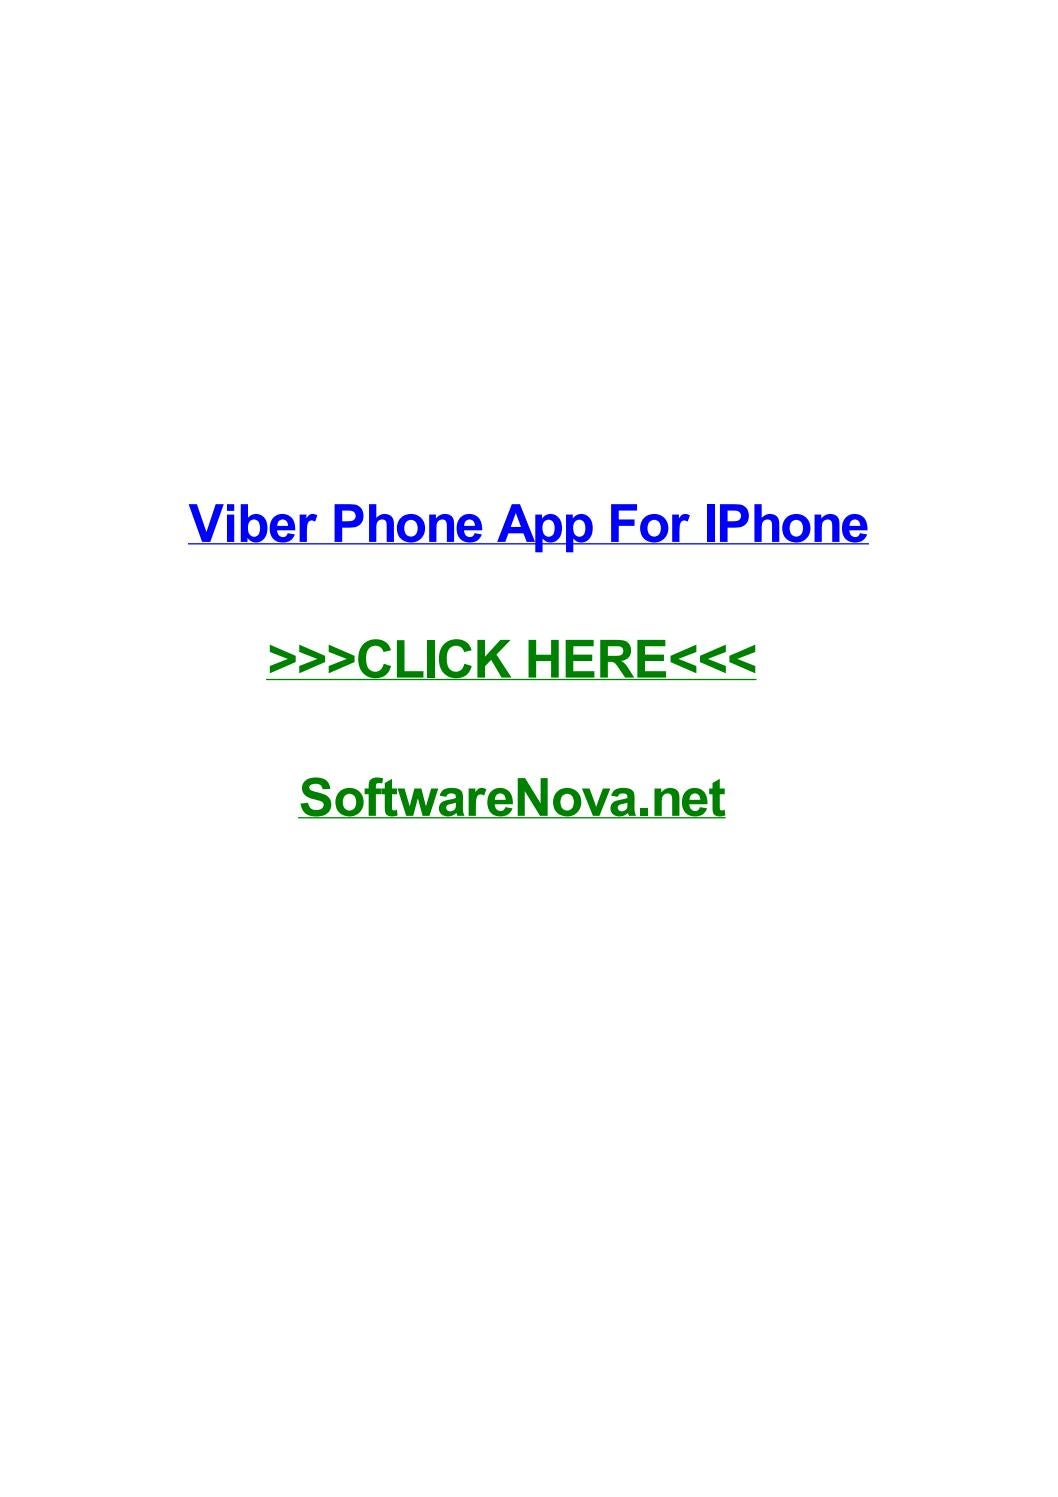 Viber phone app for iphone by jodiakyit - issuu